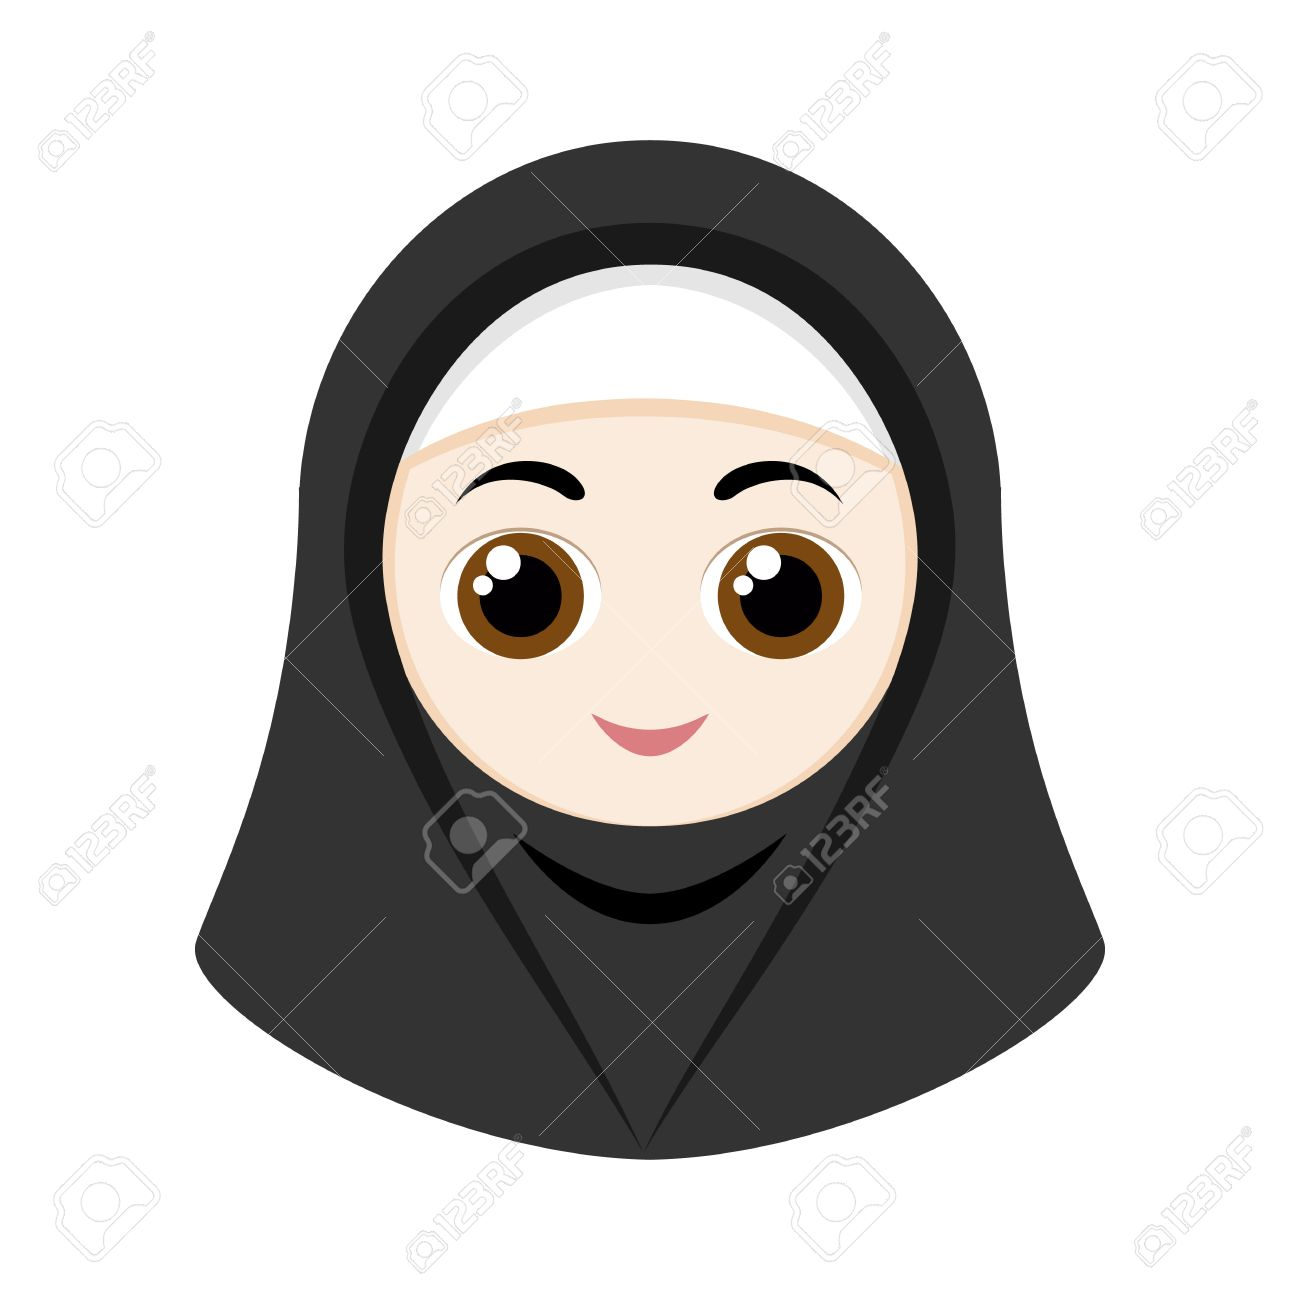 Cartoon girl with black hijab isolated on white background stock vector 56428741